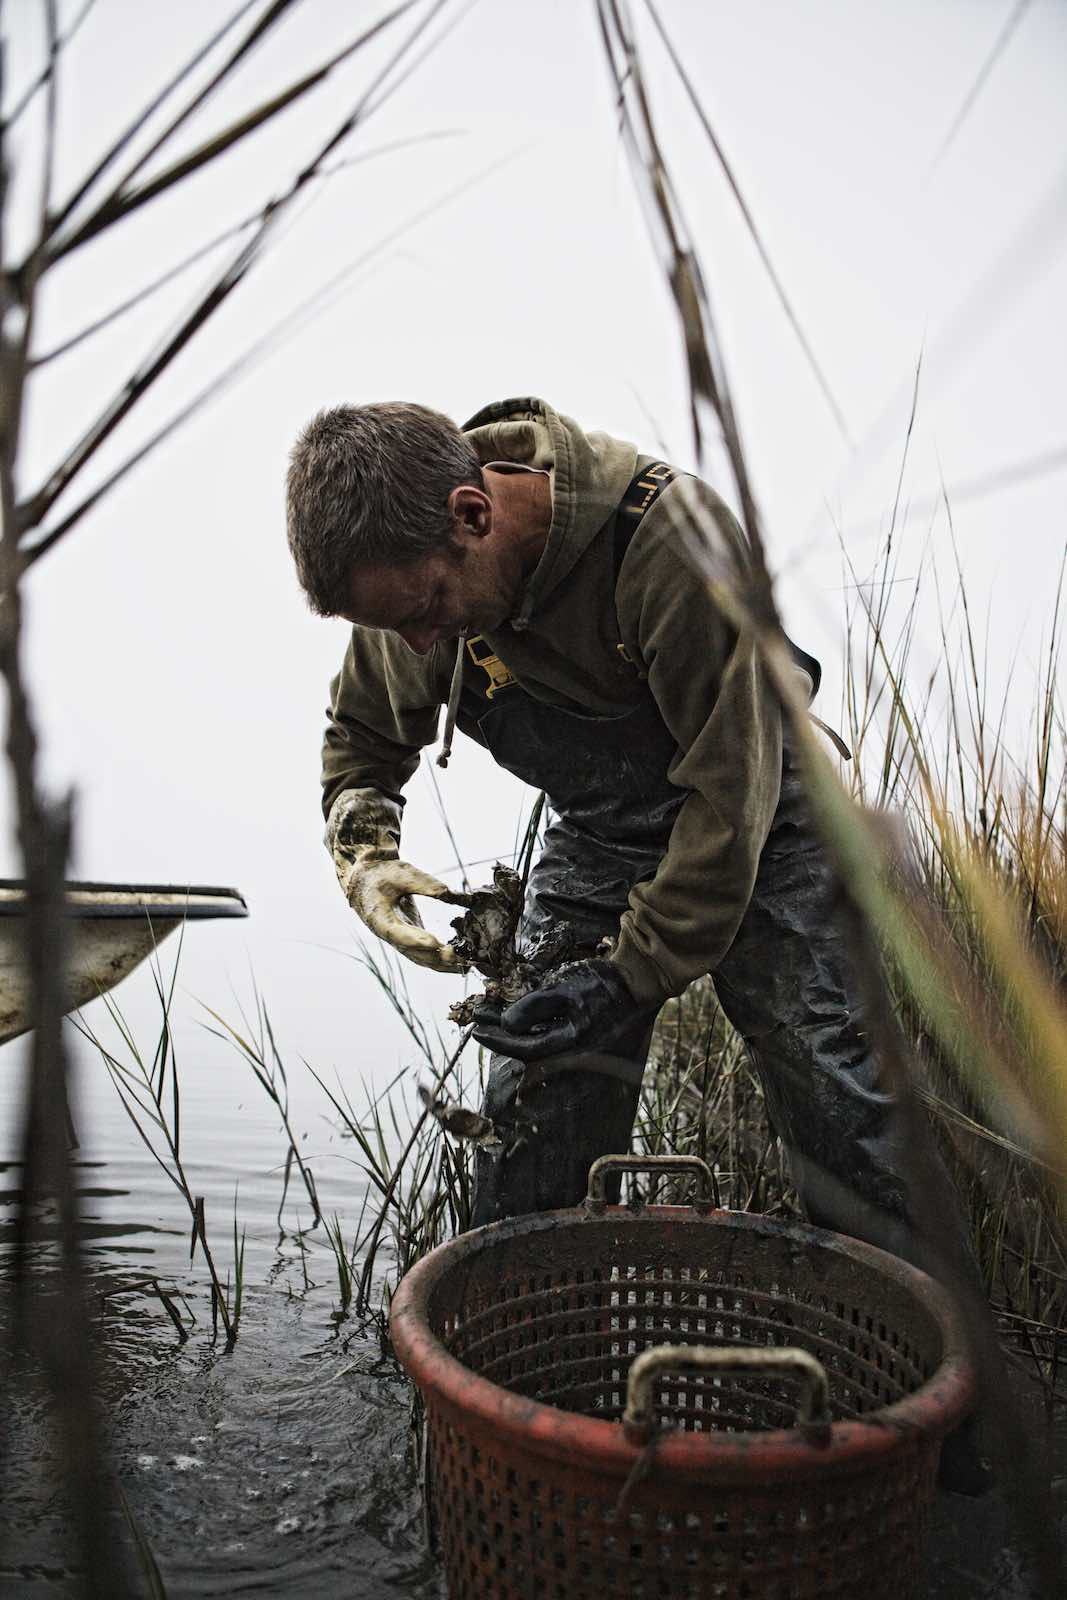 Jody Horton Photography - Fisherman grappling with fresh caught oysters.